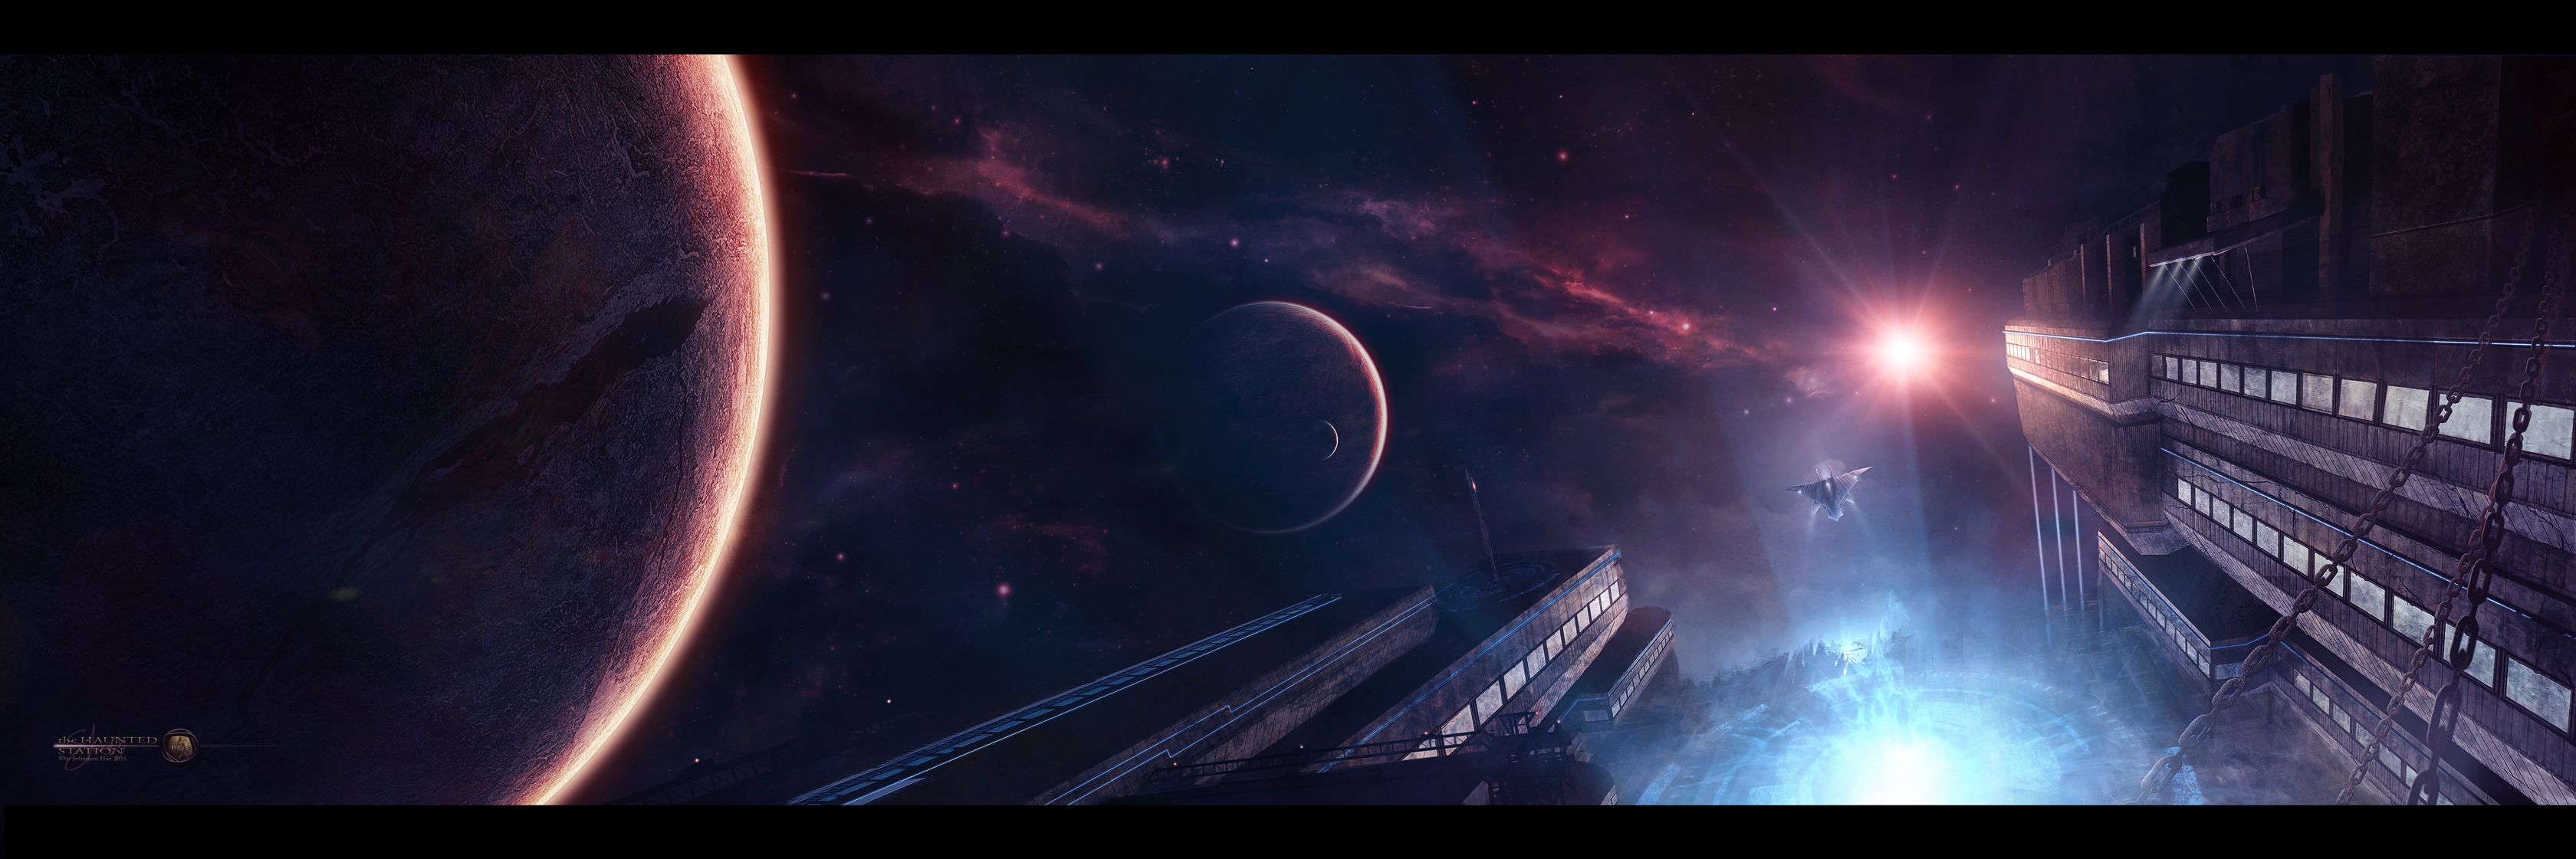 The Haunted Station /by Shue13 #deviantart #SciFi   Sci fi ...